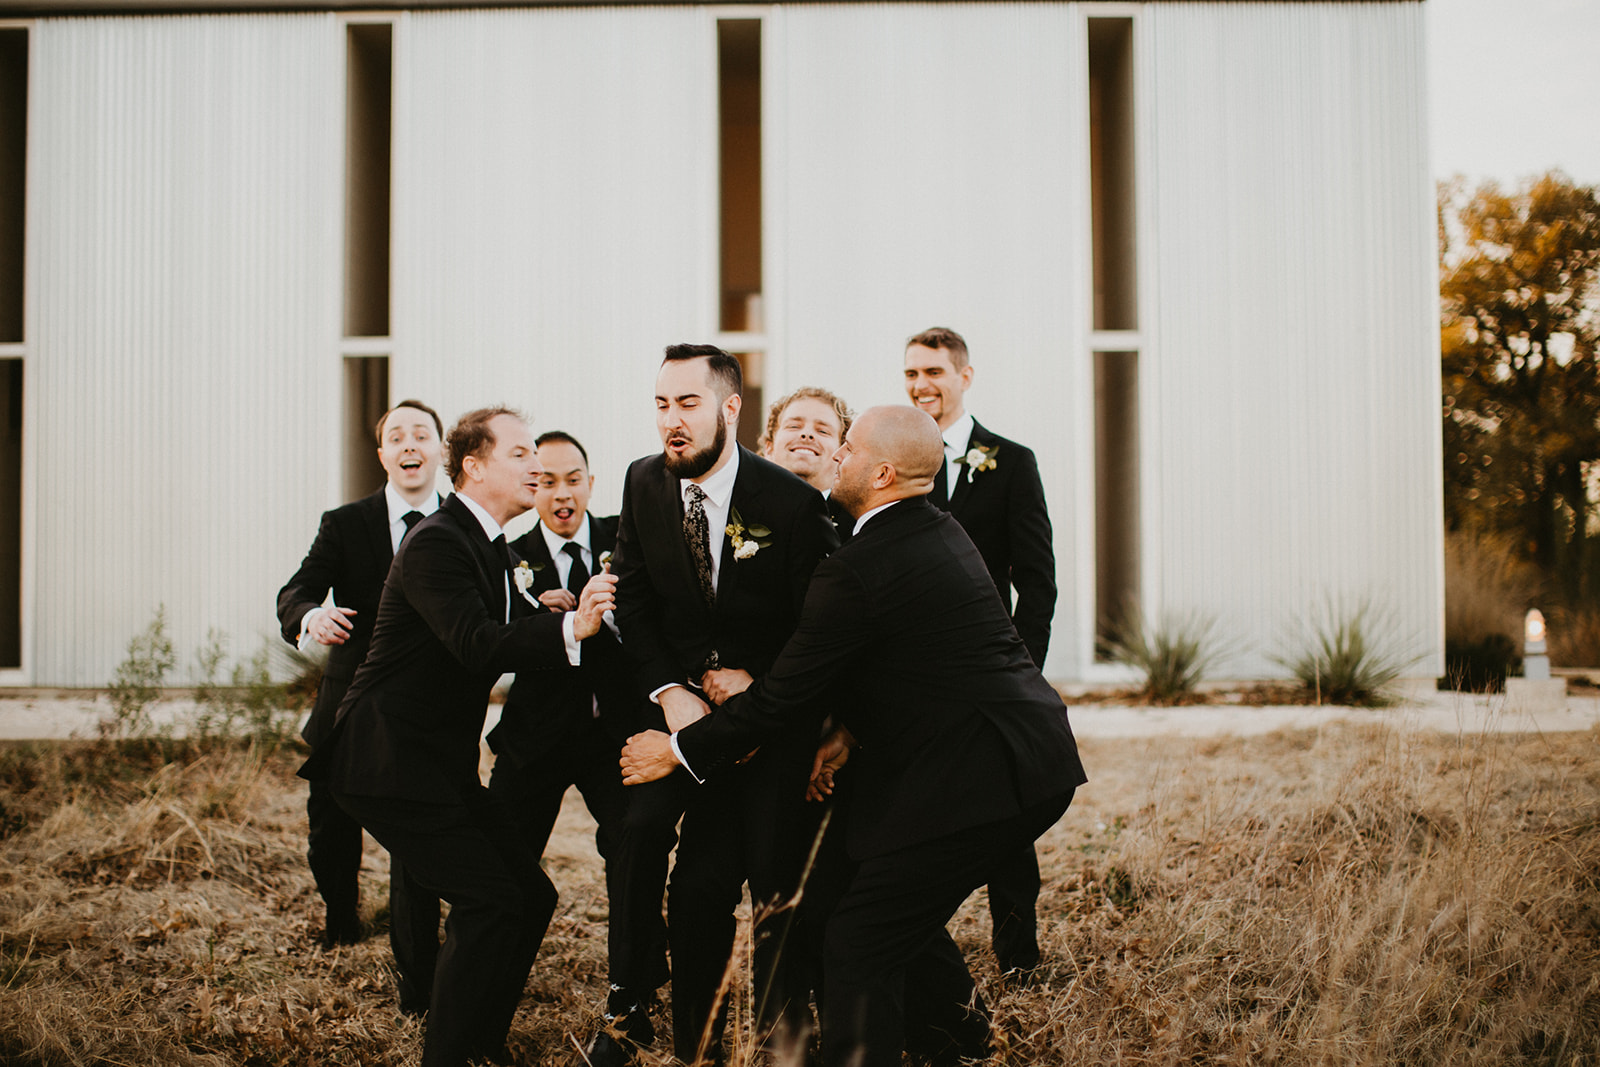 Groom Attire Suit + Floral Tie + Boutonnière with hops + craft brew beer + black + austin wedding venue prospect house + austin wedding planner epoch co